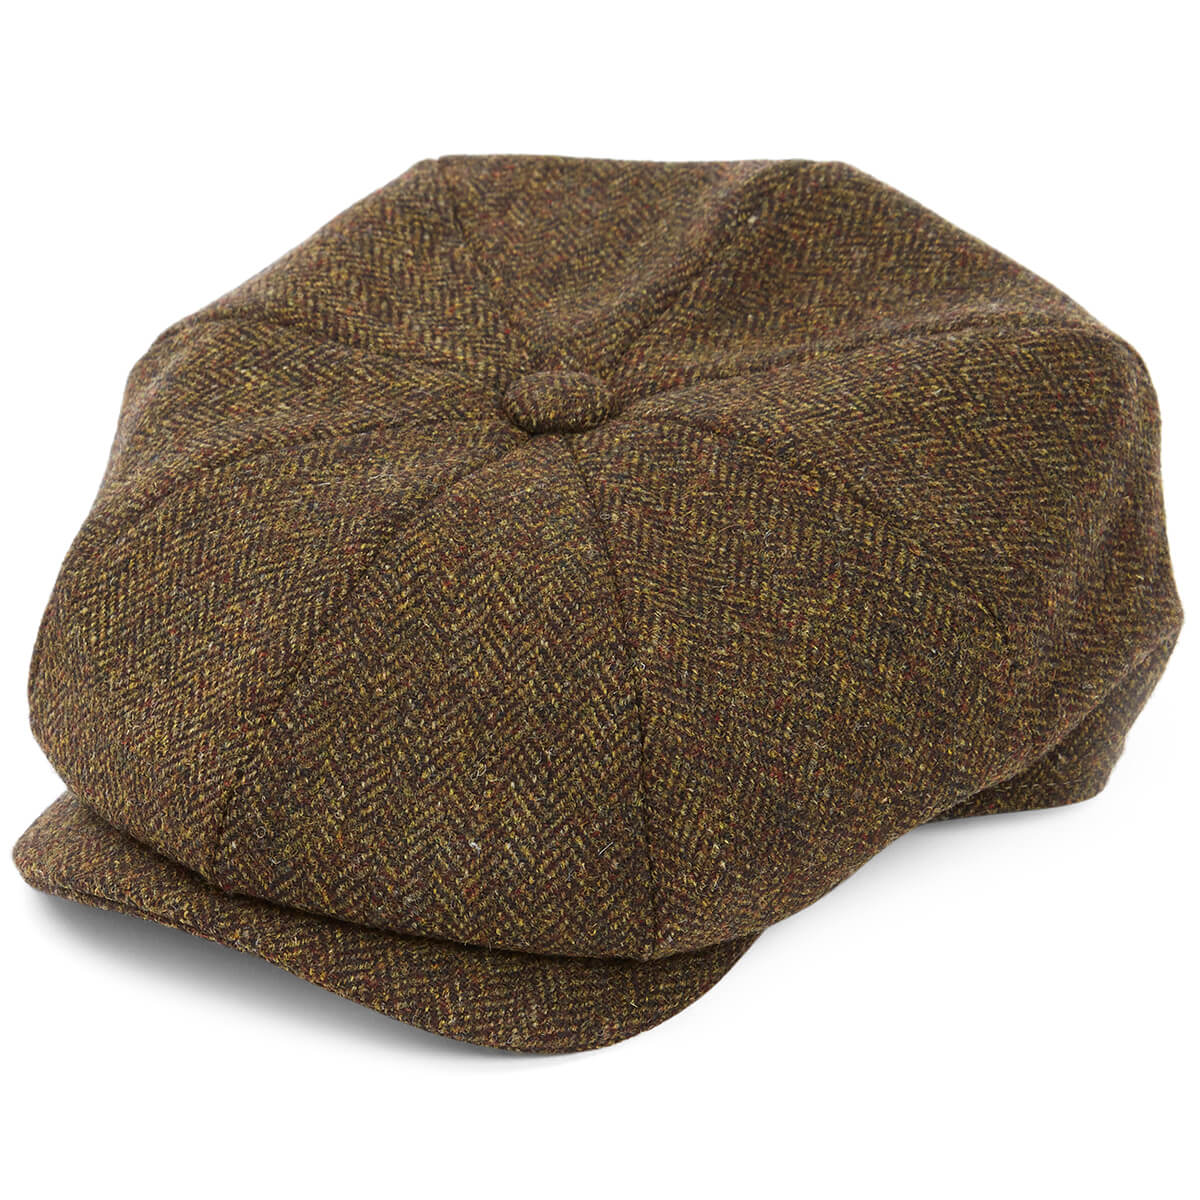 8 Piece Baker Boy Tweed Flat Cap - Z506 - size S